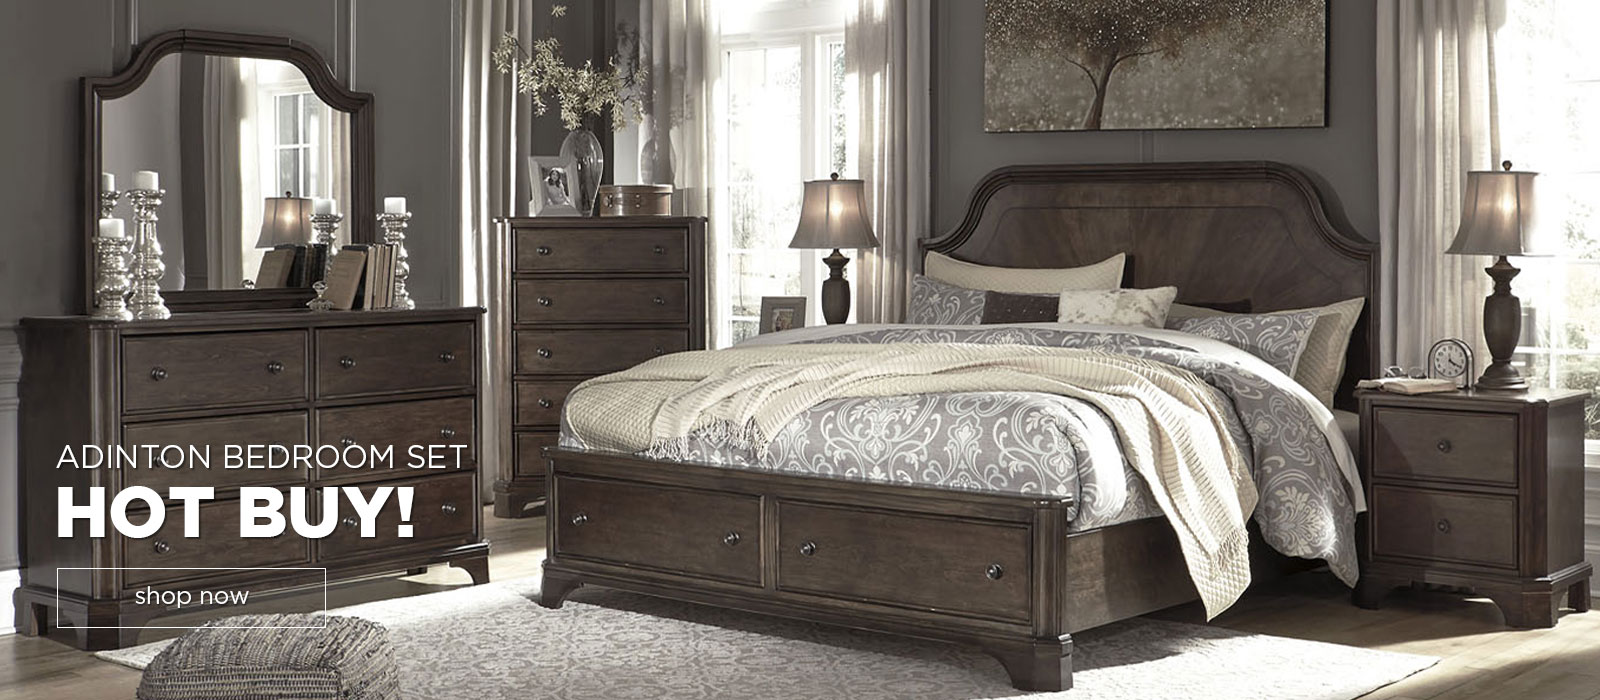 Adinton Bedroom Set